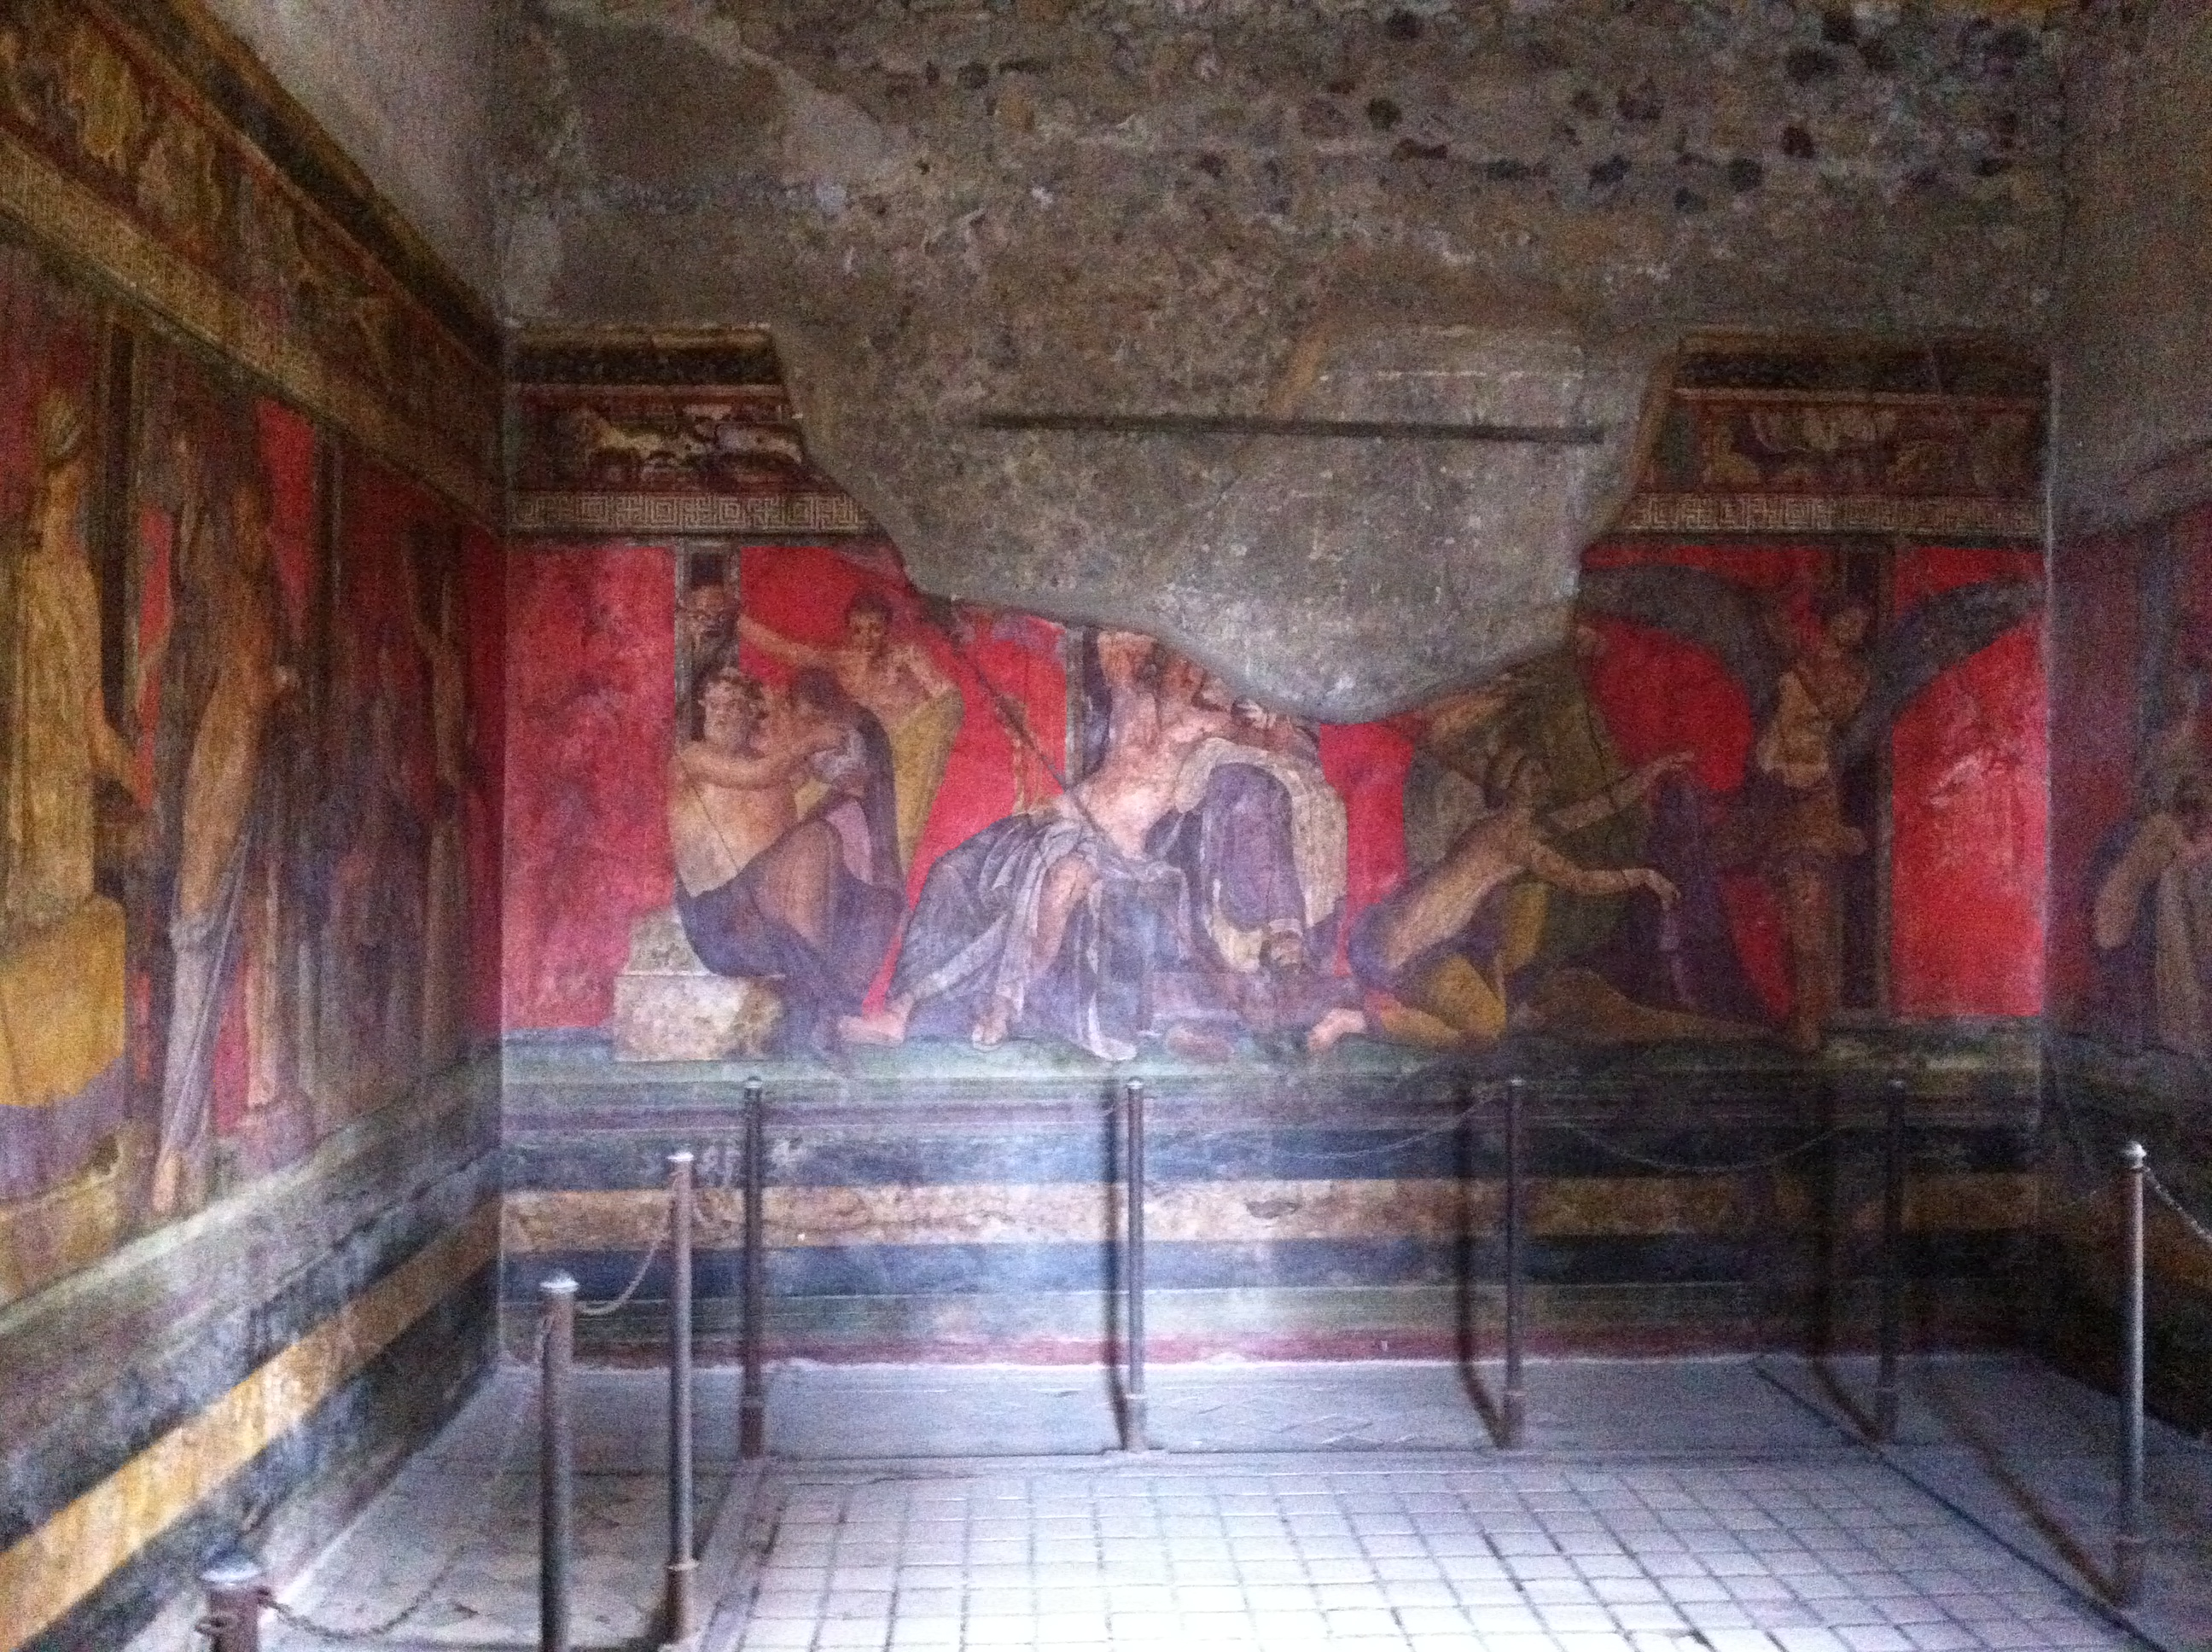 Villa of the Mysteries, Pompeii